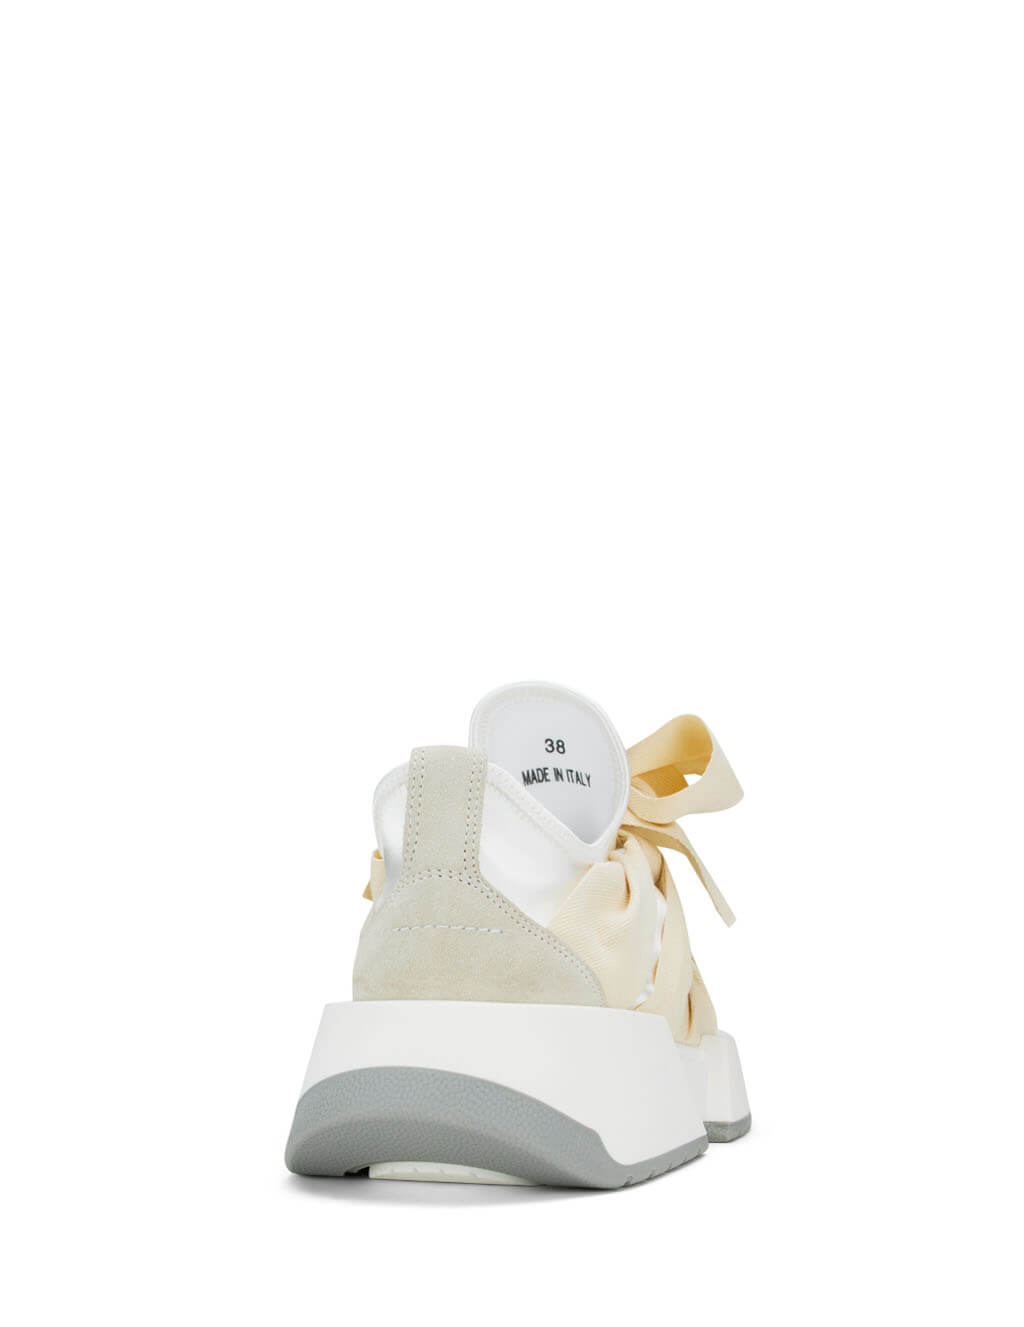 Women's Ivory and White MM6 Maison Margiela Ribbon Tie Sneakers S59WS0033P3286T8069